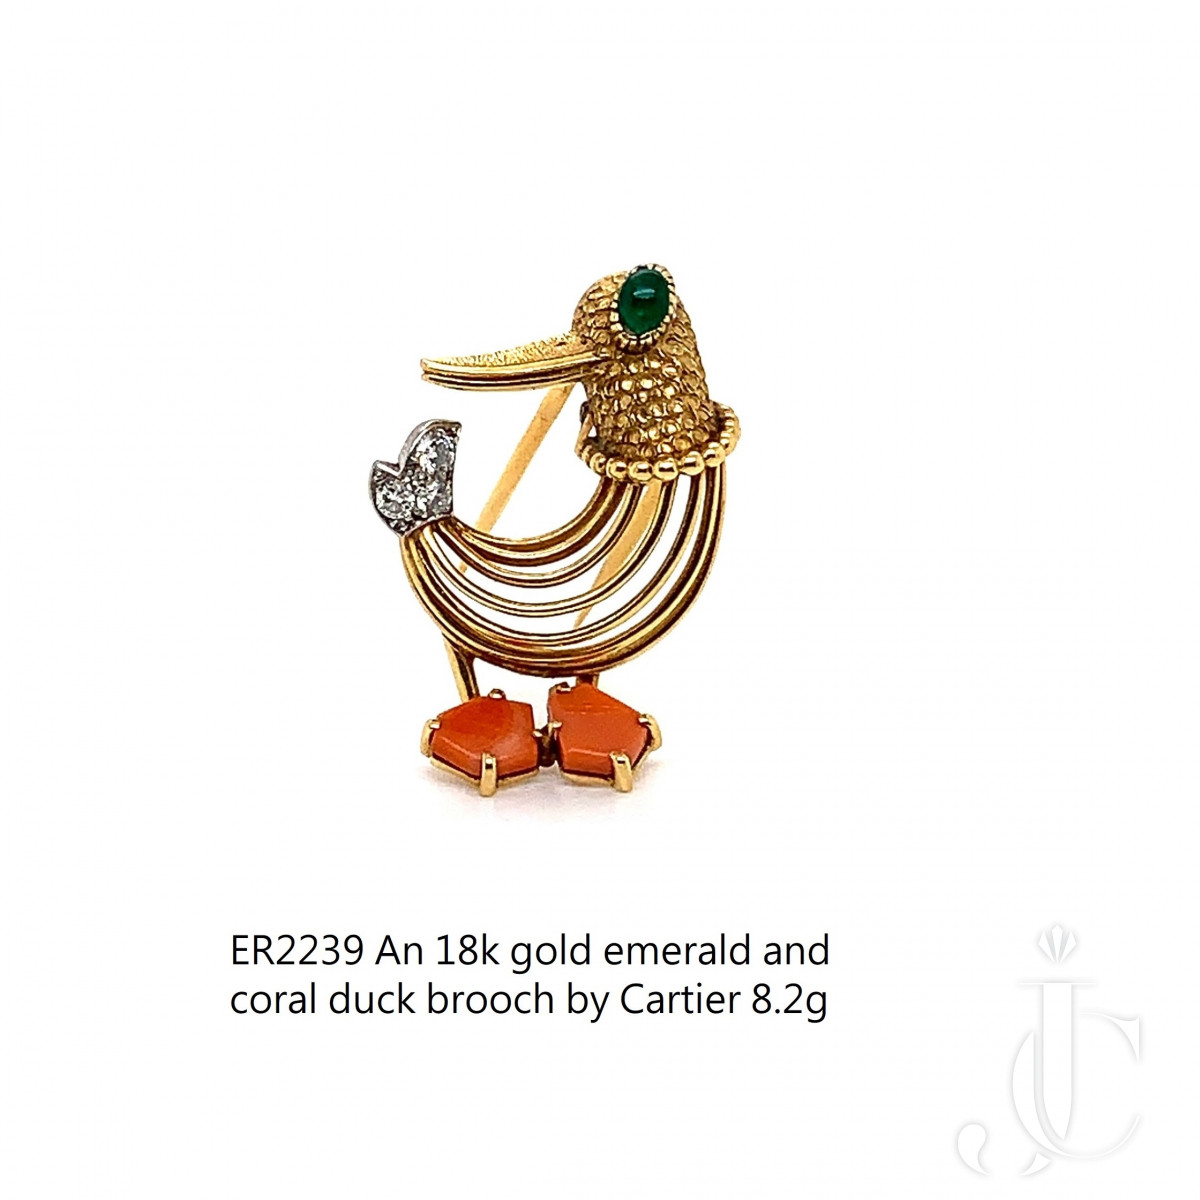 An 18k gold emerald and coral duck brooch by Cartier